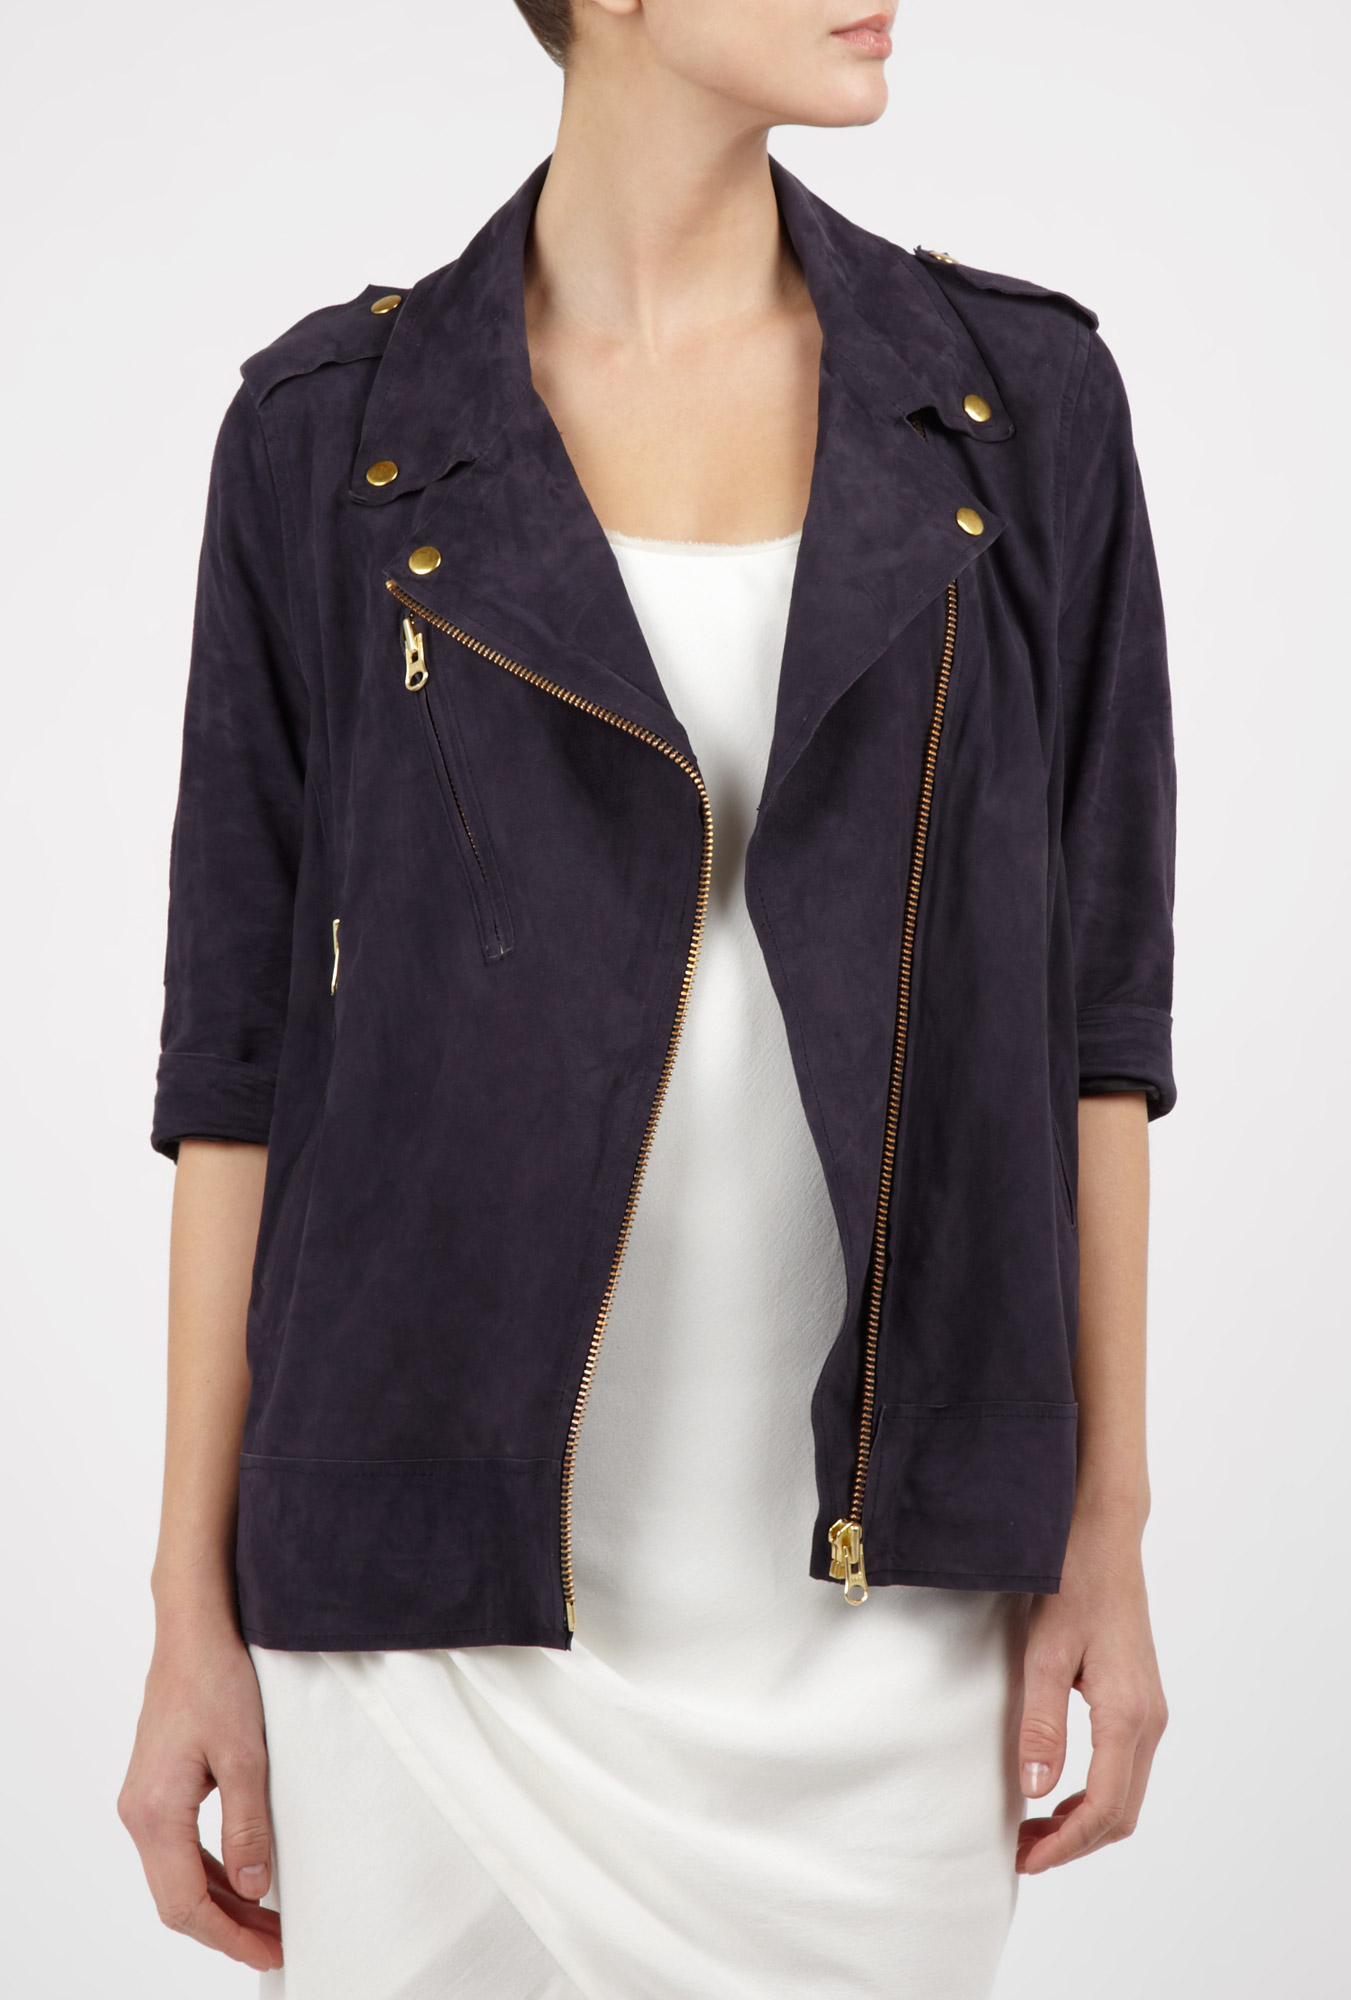 Navy blue smith suede jacket by acne